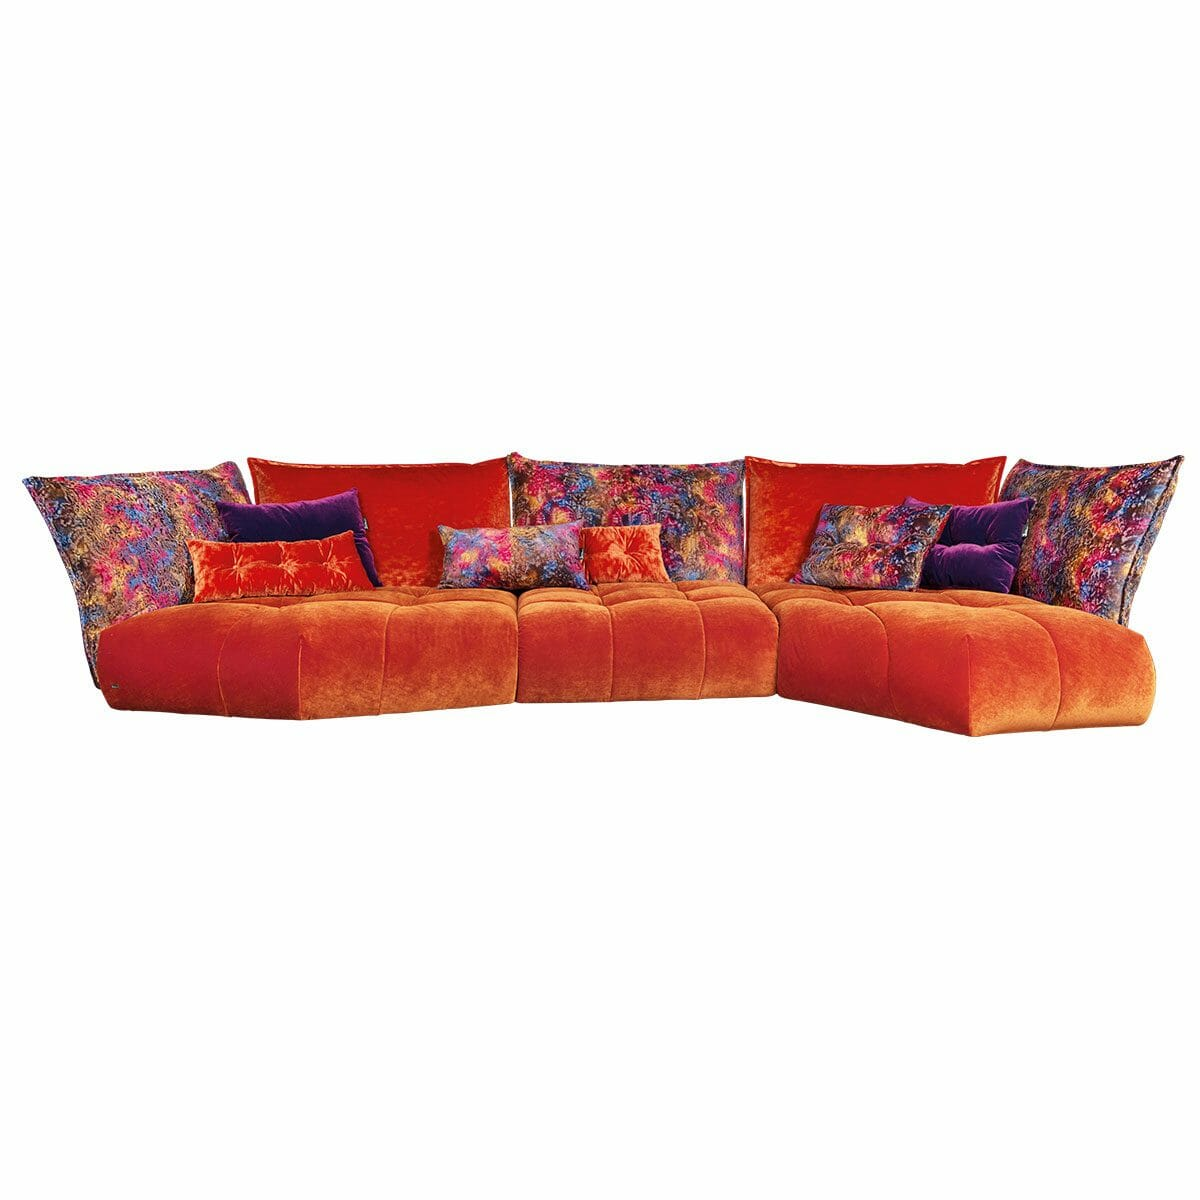 Bretz Sofa MATILDA Uli-Rli-Xre in kupfer - indian summer